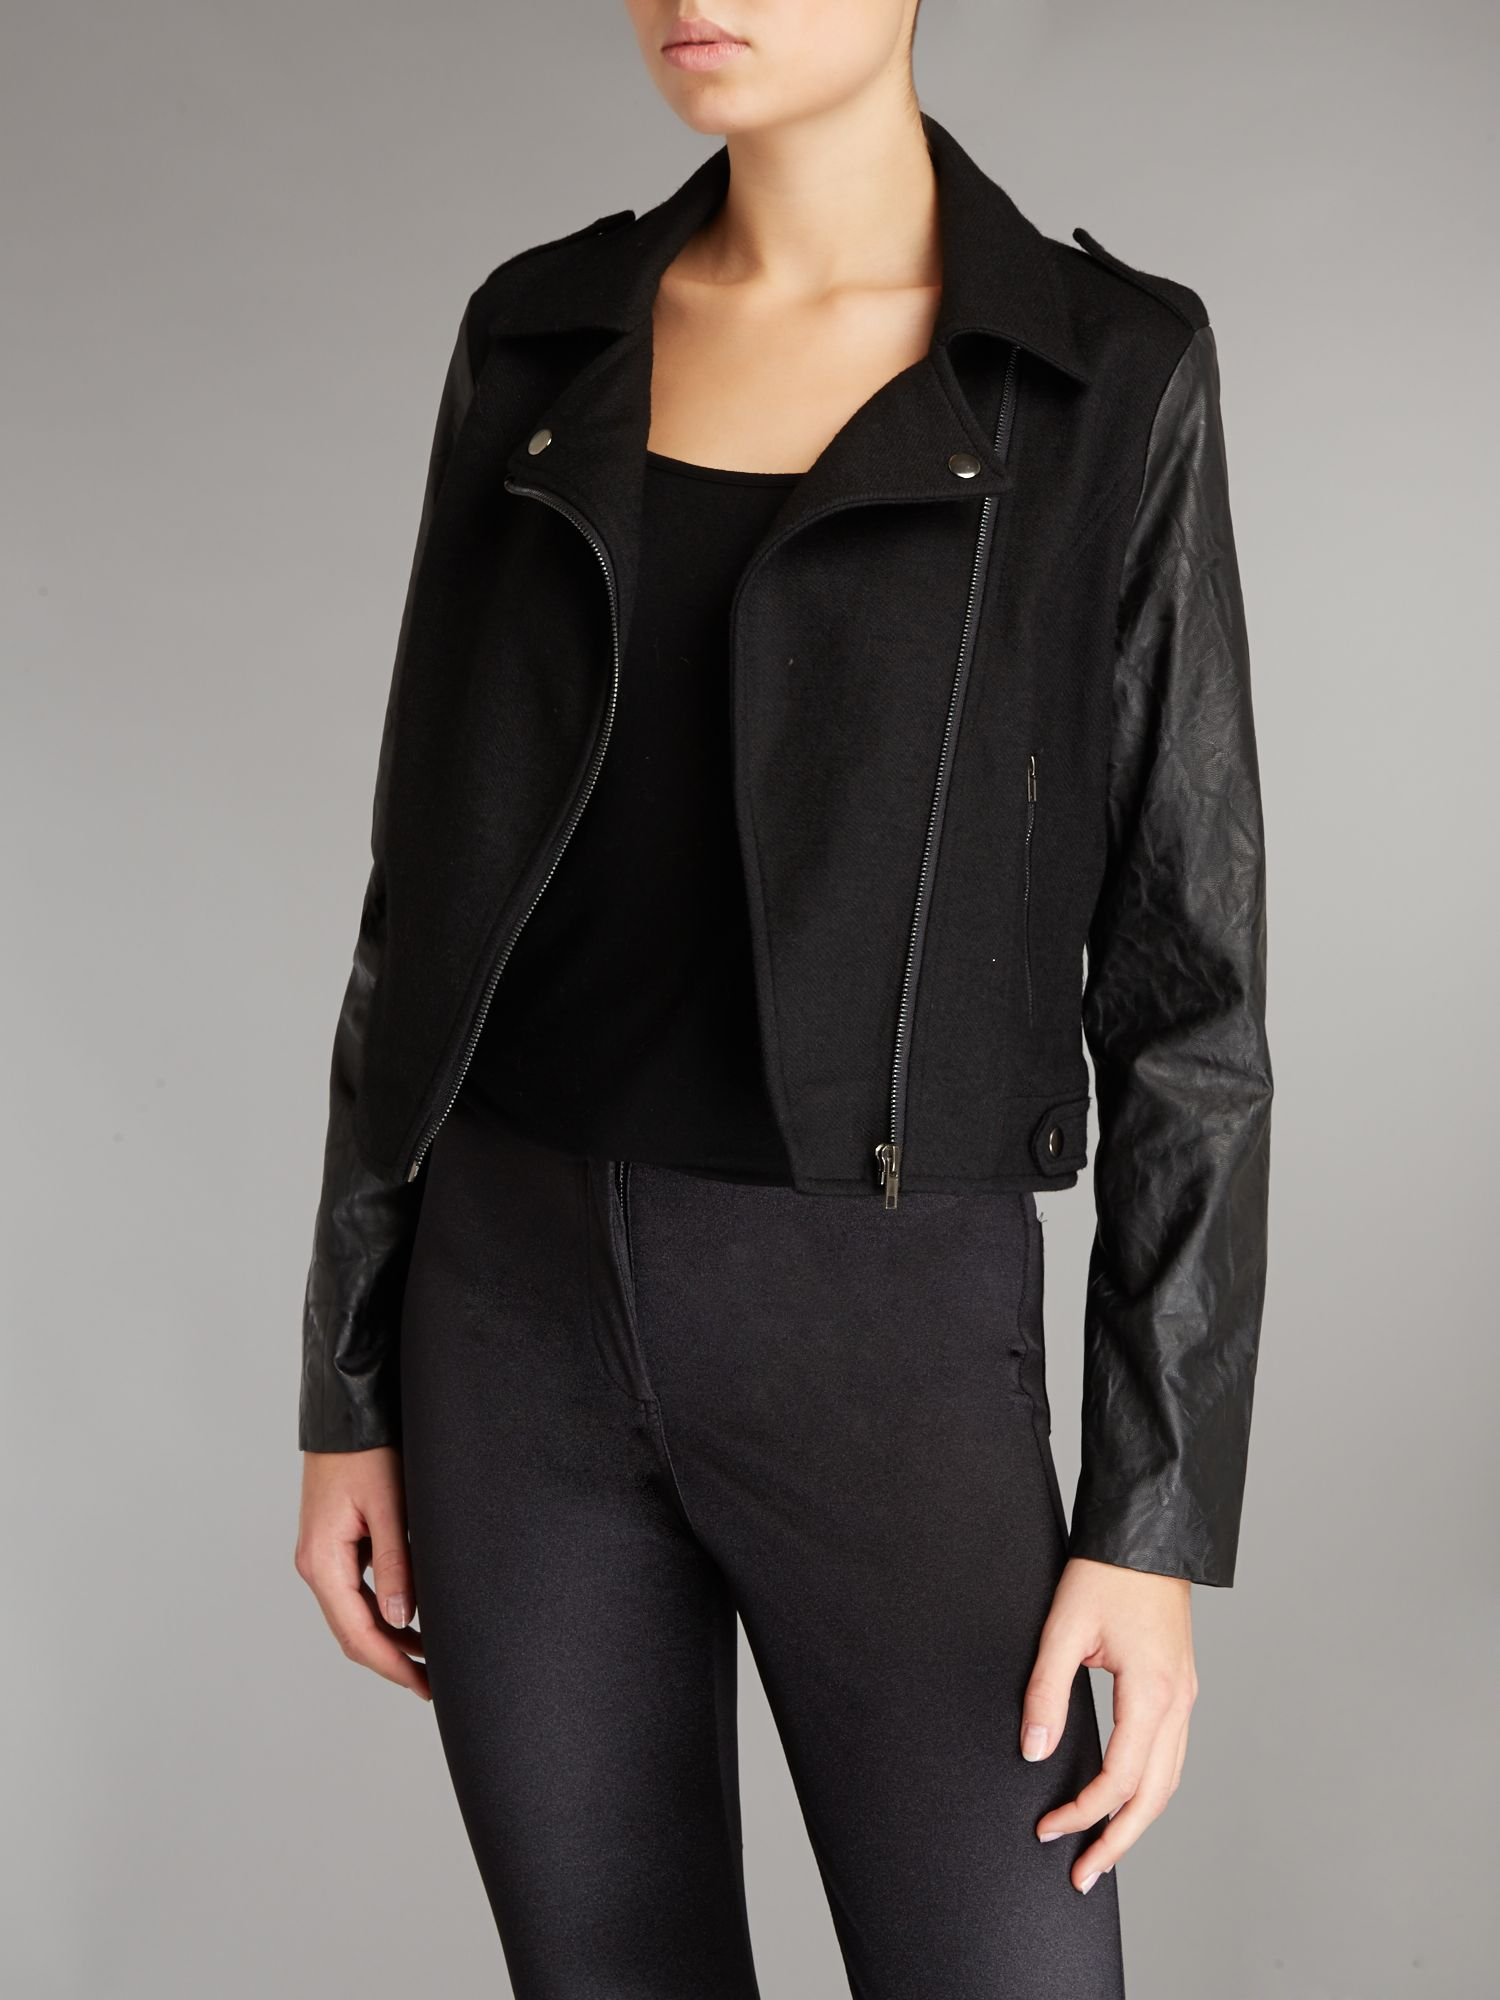 Contrast Sleeved Jacket